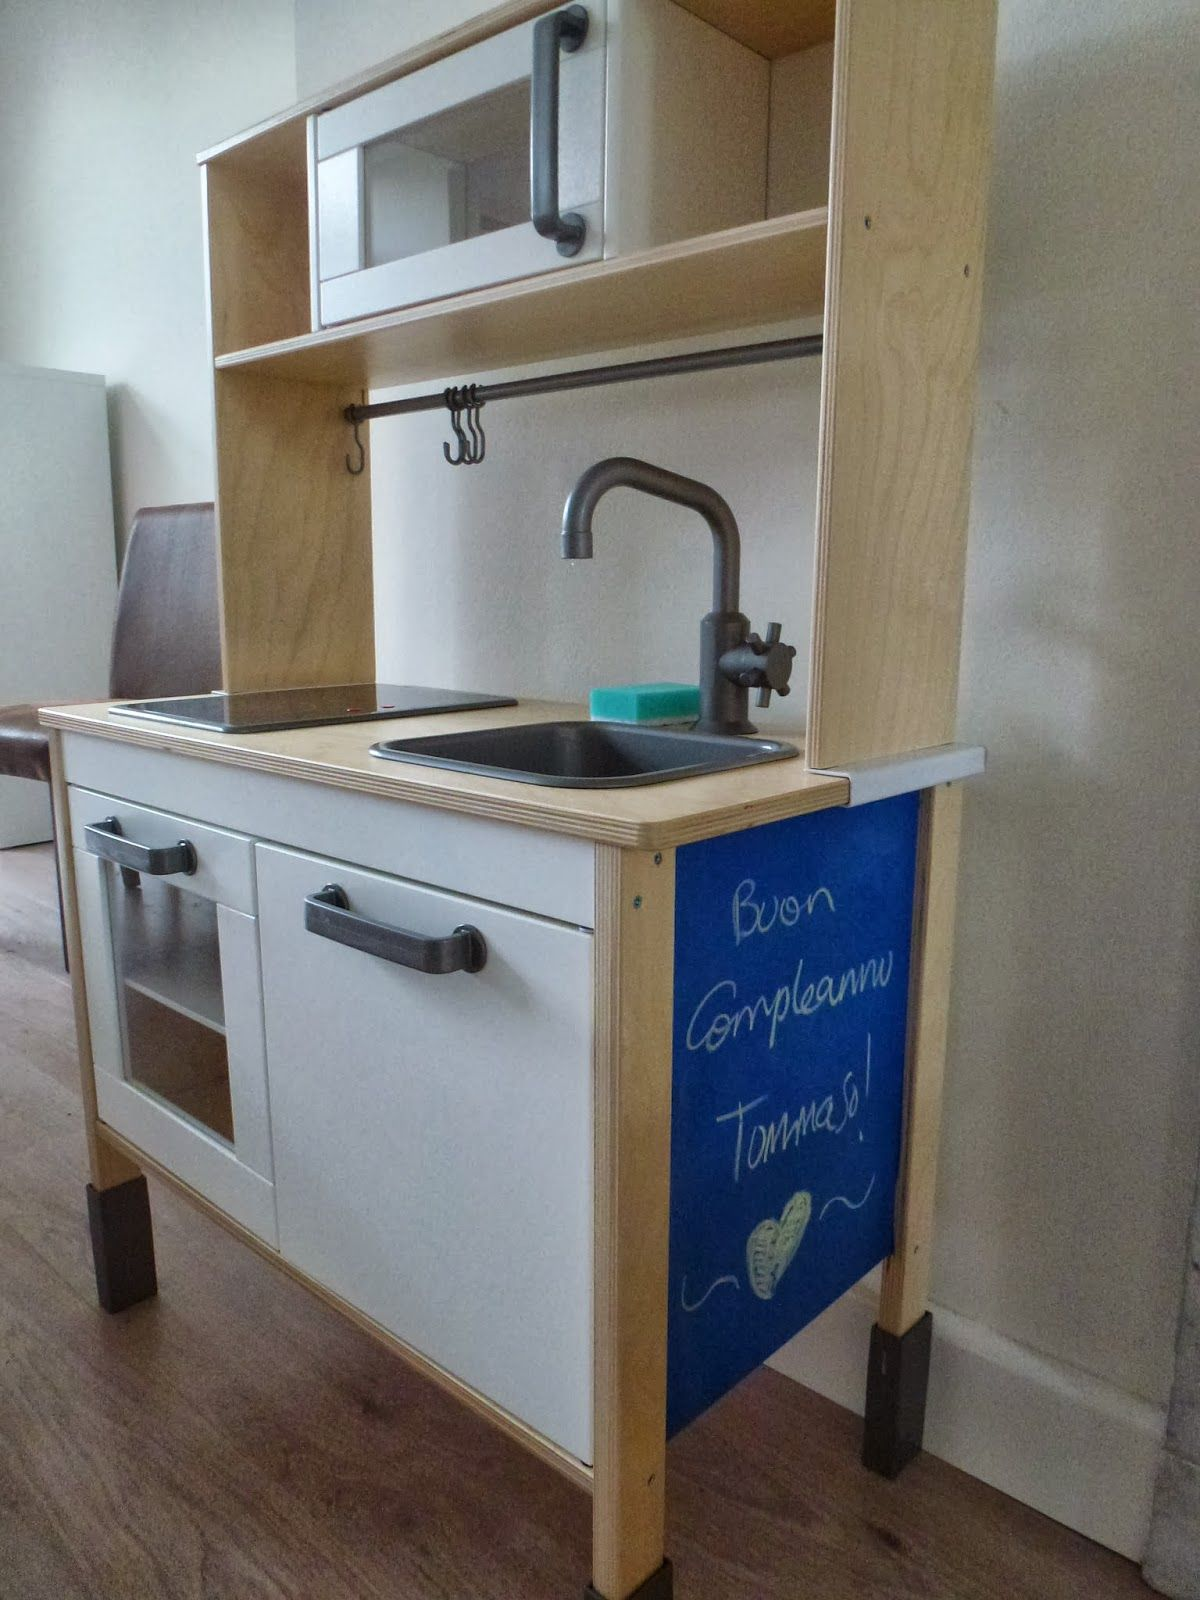 Cocina Madera Juguete Ikea Blue And Ampersand Ikea Hack Duktig Kitchen Play